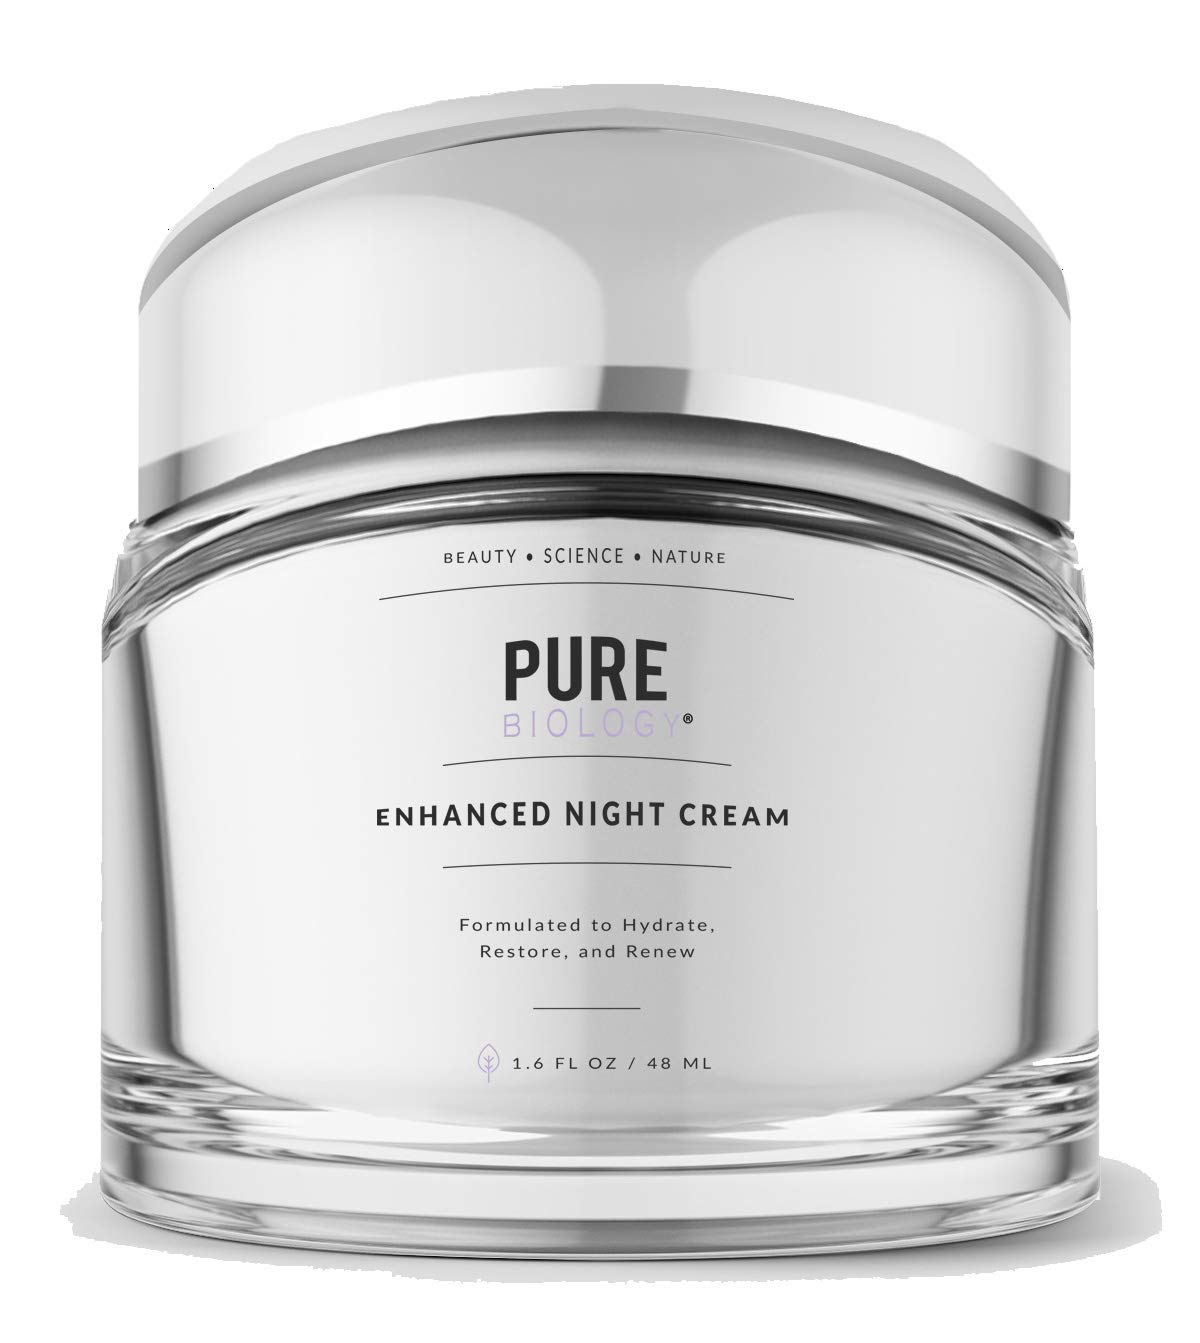 Pure Biology Premium Night Cream Face Moisturizer with Retinol, Hyaluronic Acid & Anti Aging, Wrinkle Firming Complexes